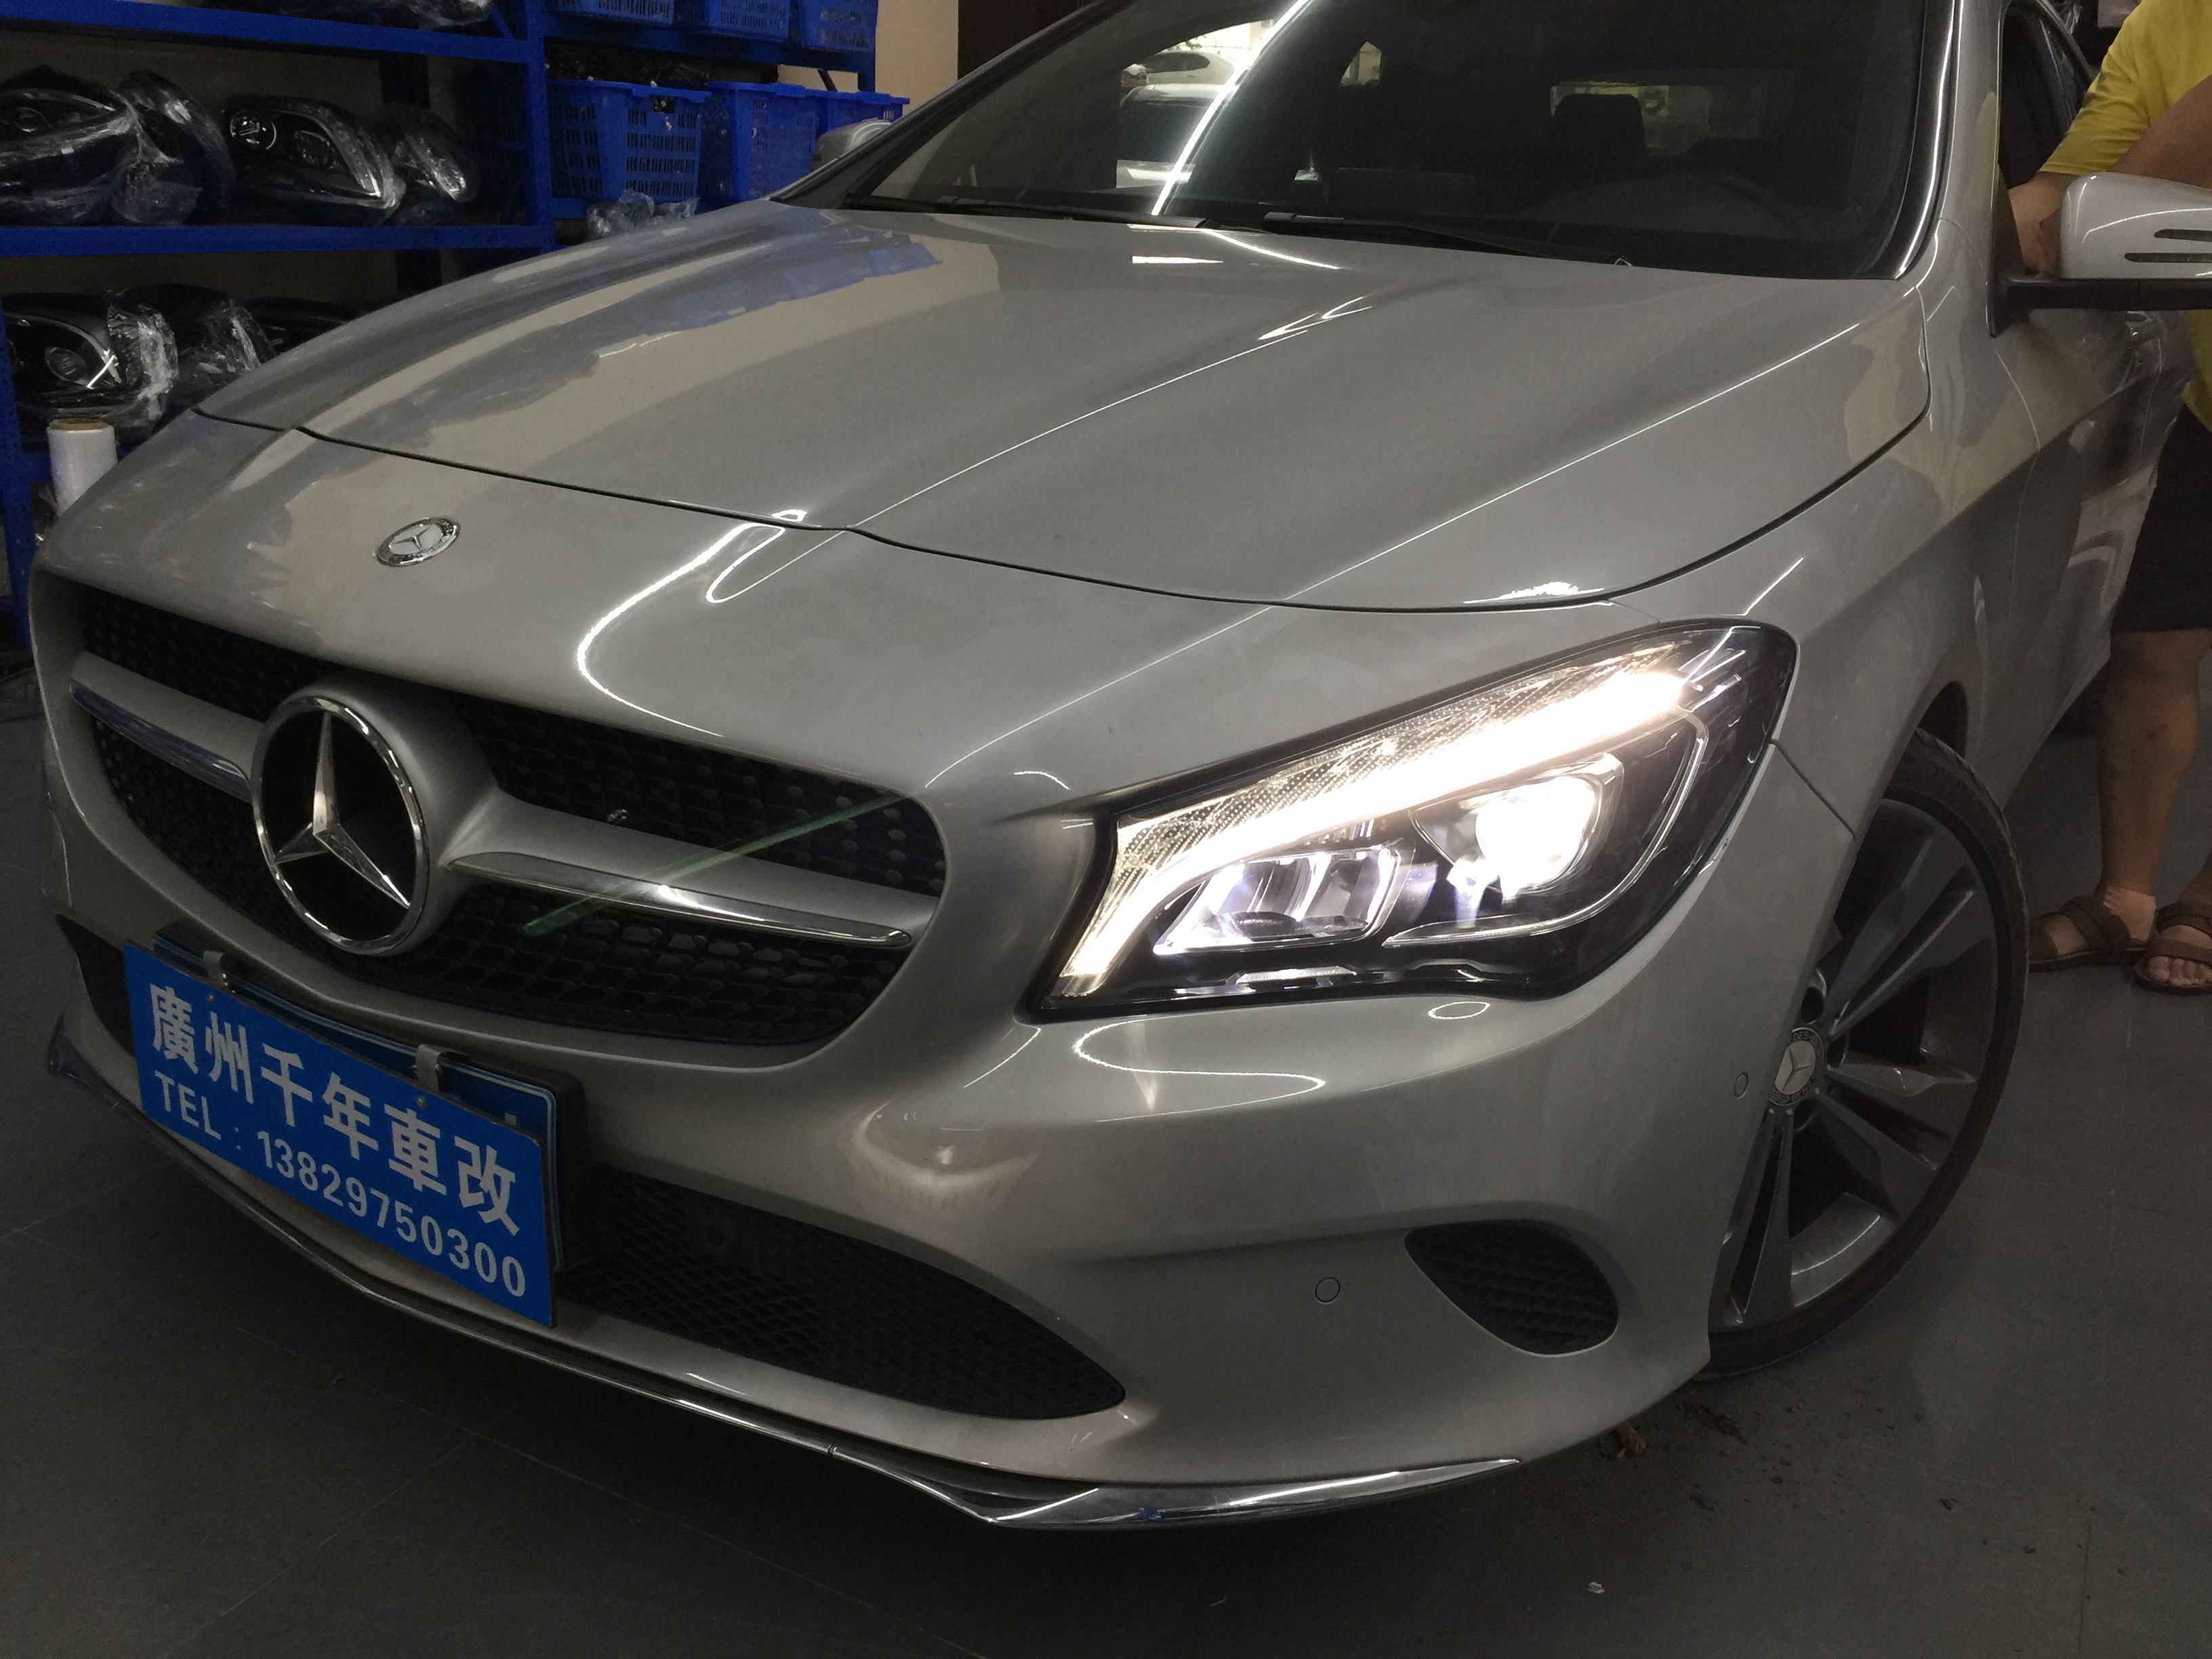 Mercedes Cla 250 >> Mercedes-Benz CLA250 halogen lamp transformation LED headlamps